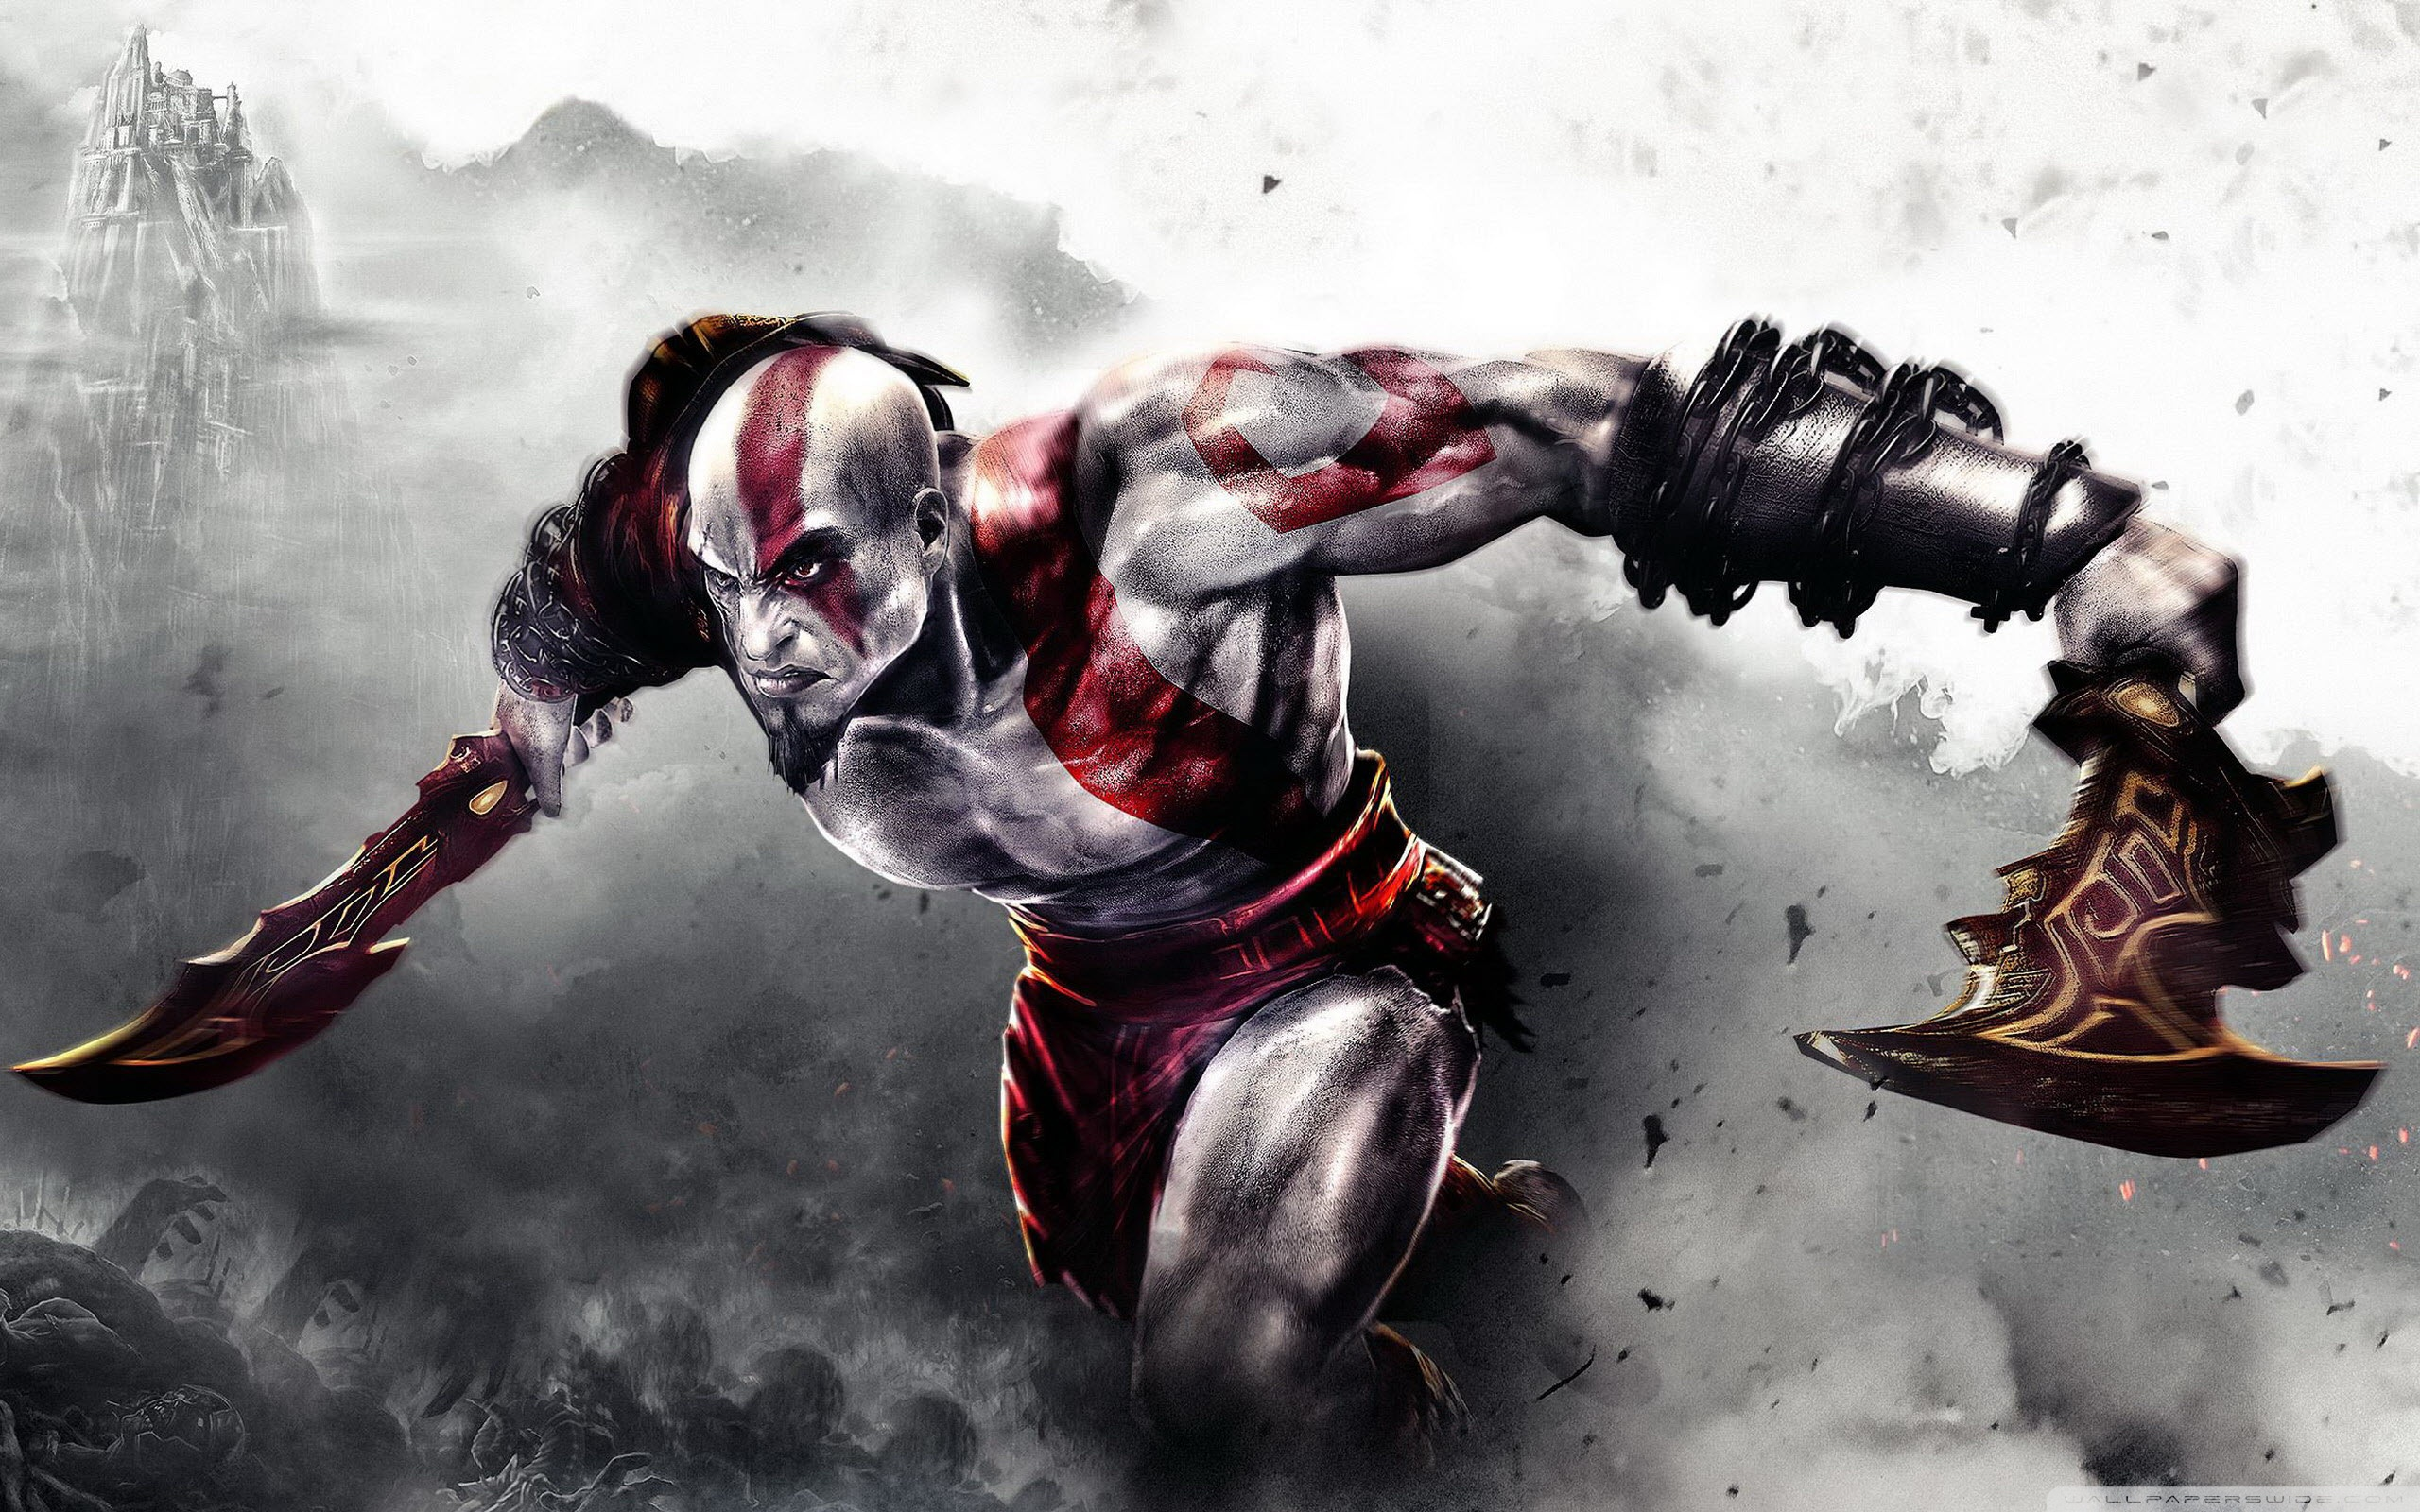 Wallpaper Of God Of War